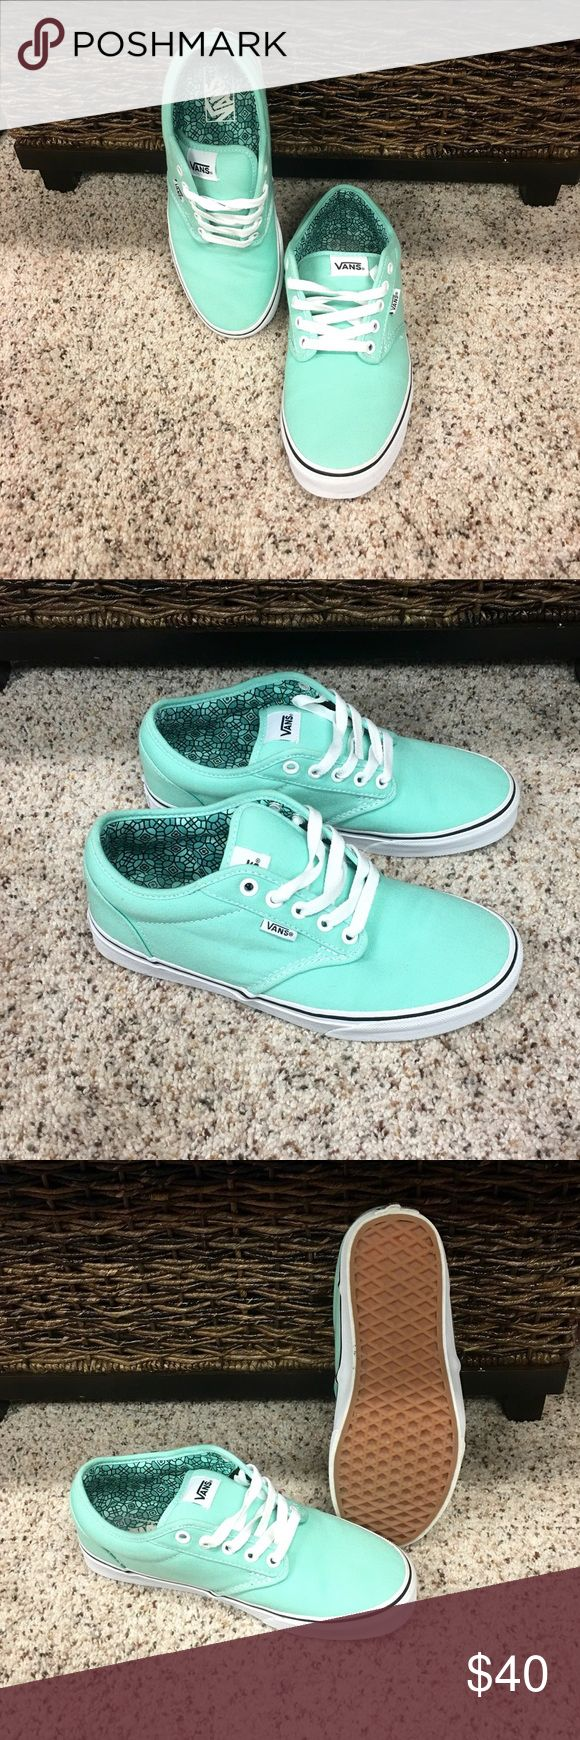 Mint Green Vans Like New Mint Green Vans! Worn Once! In Near Perfect Condition! Vans Shoes Sneakers